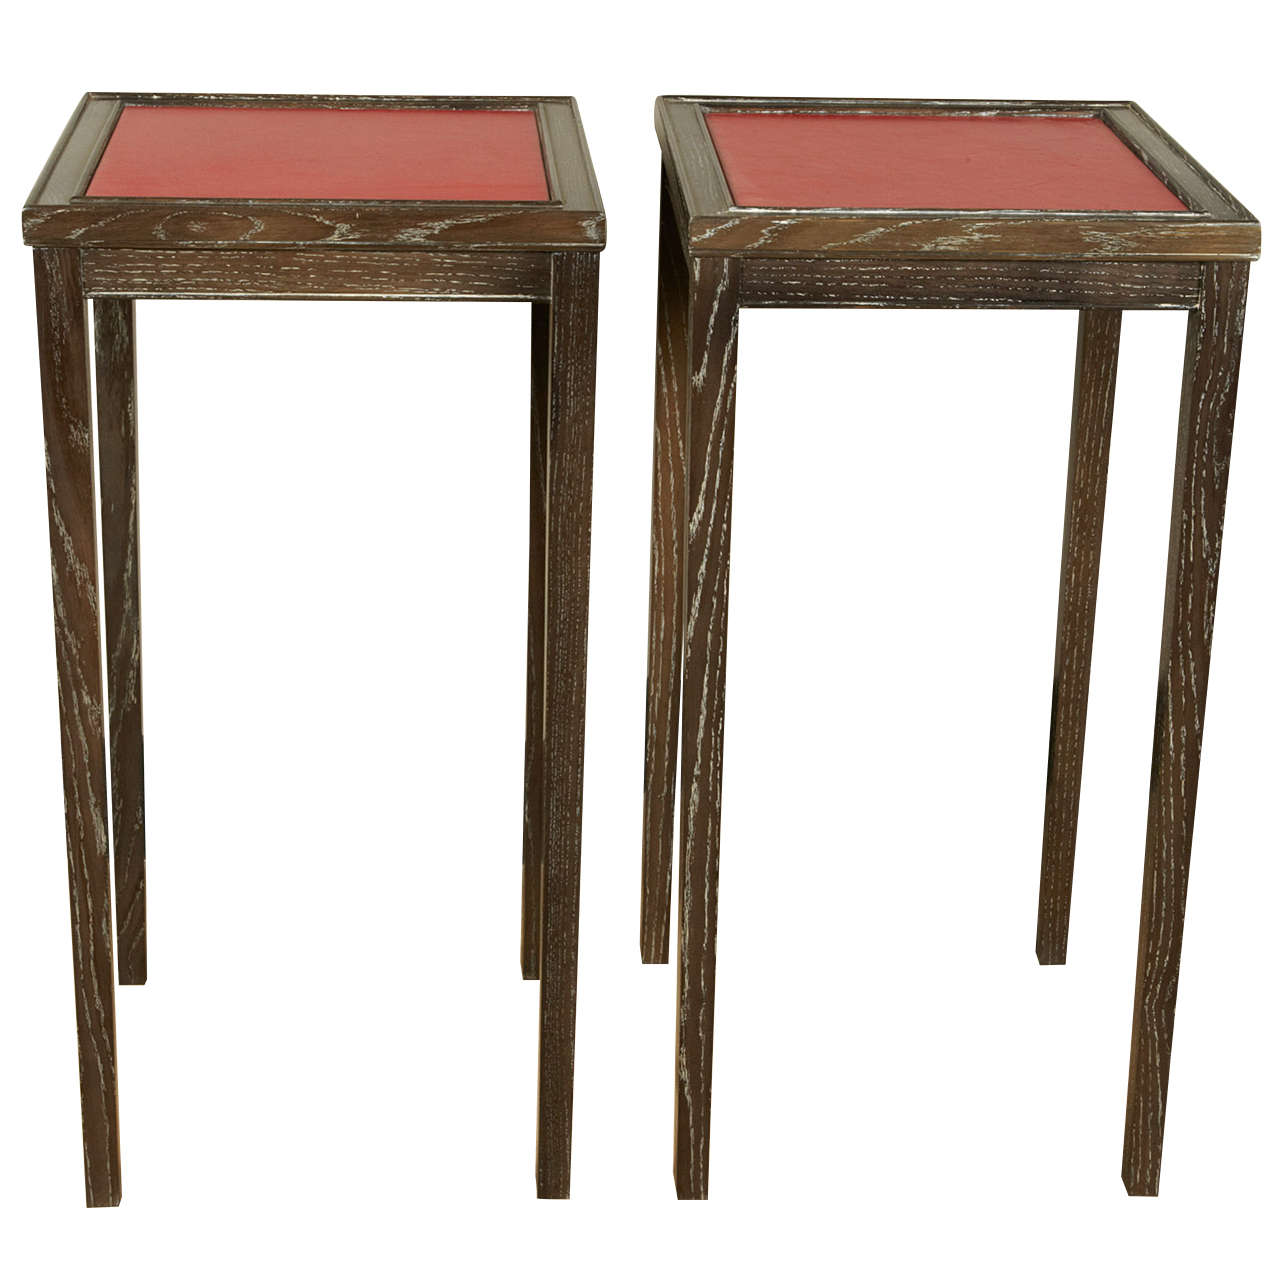 1950's Pair Of Tables